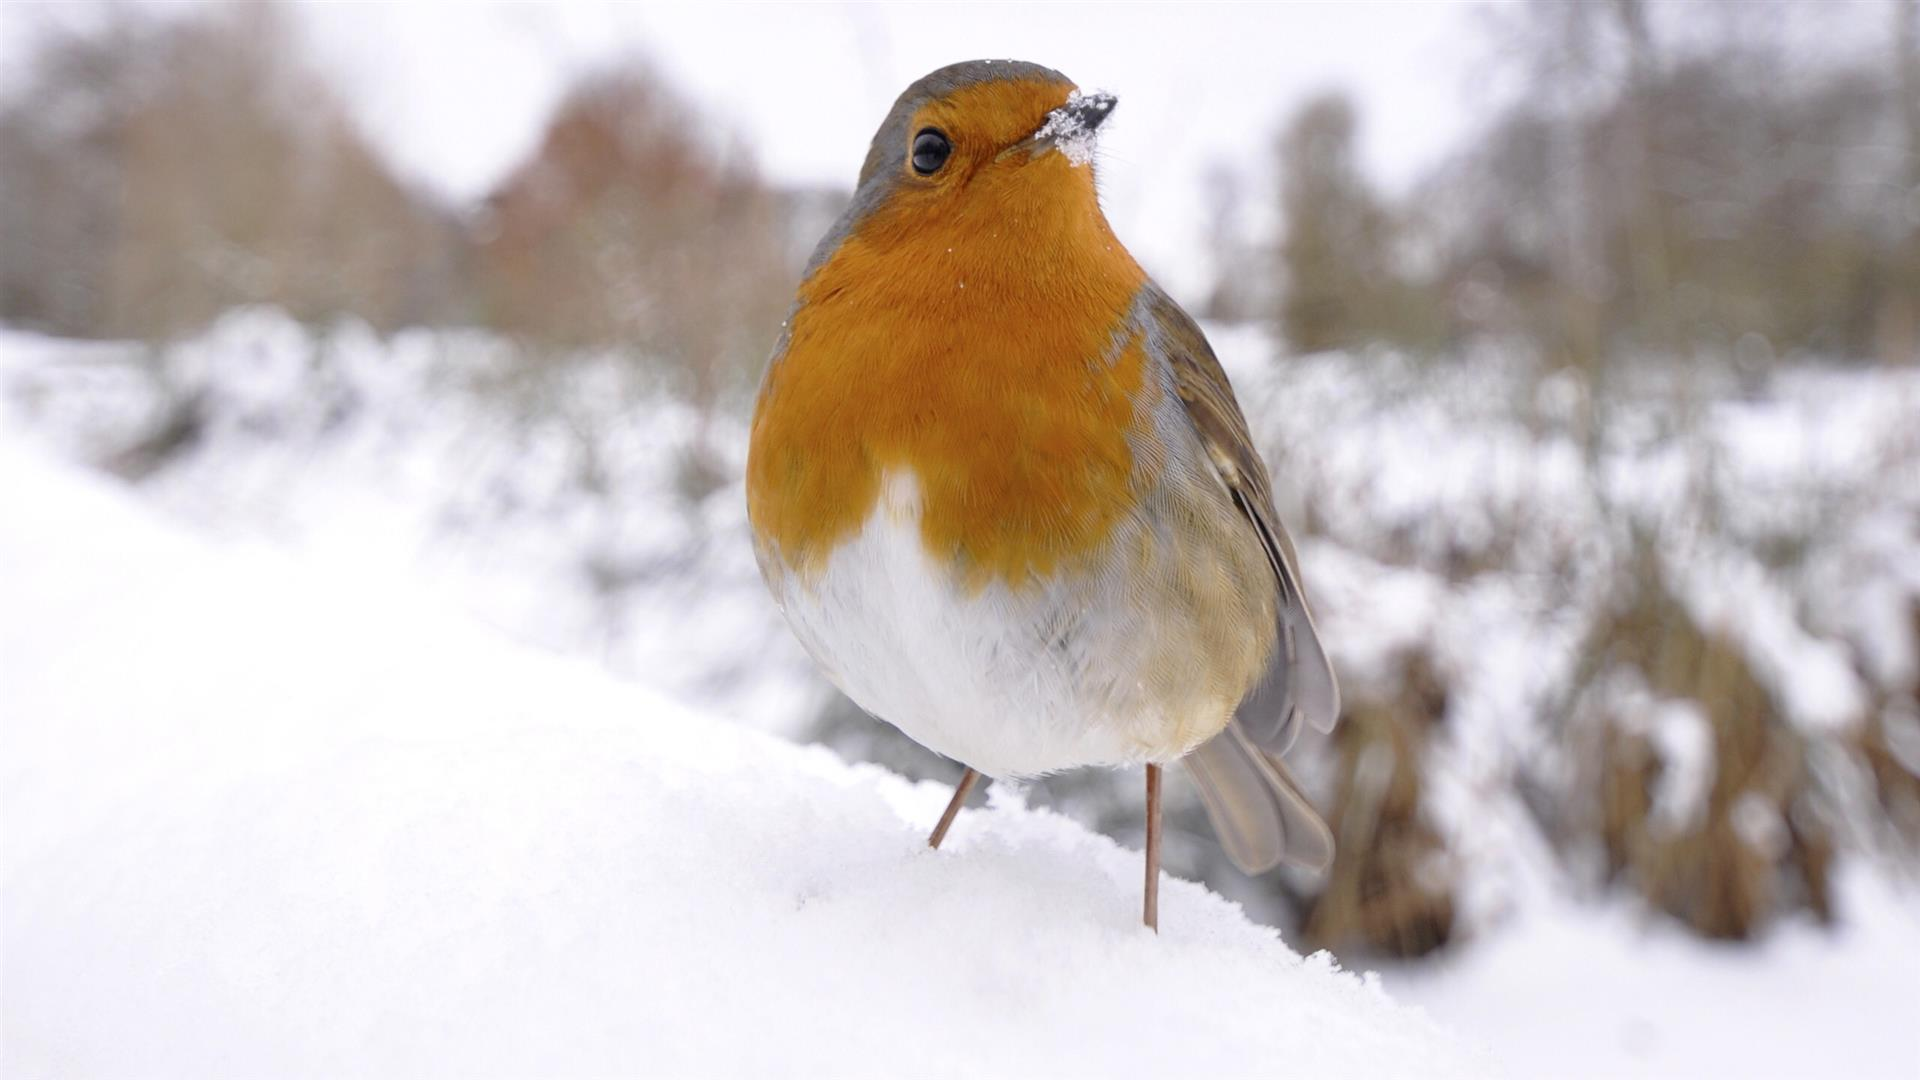 1920x1080 European Robin Bird in Snowy Mountain